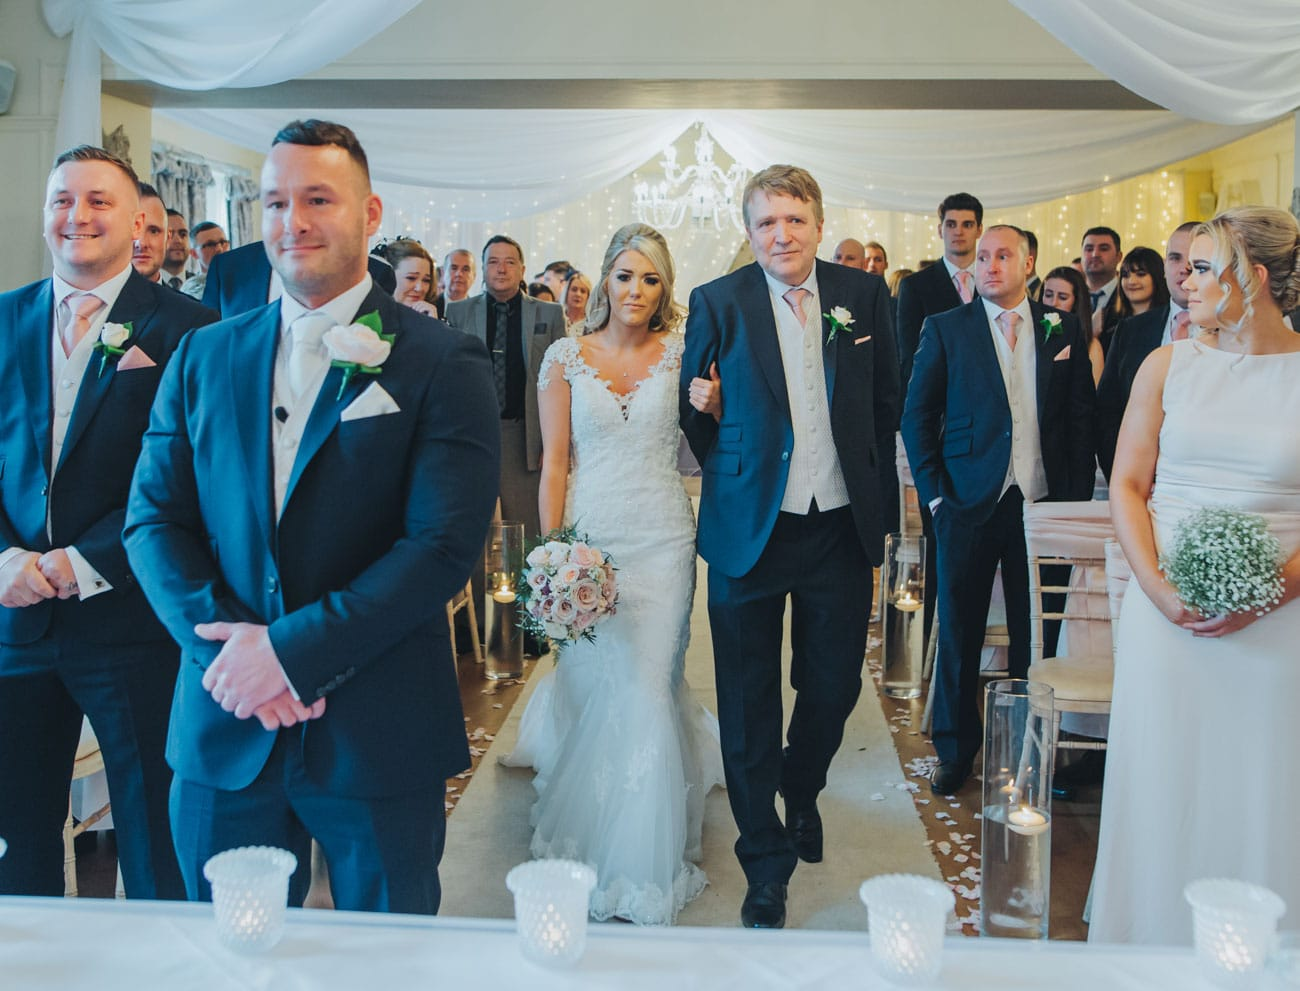 walking down the aisle at Eaves Hall